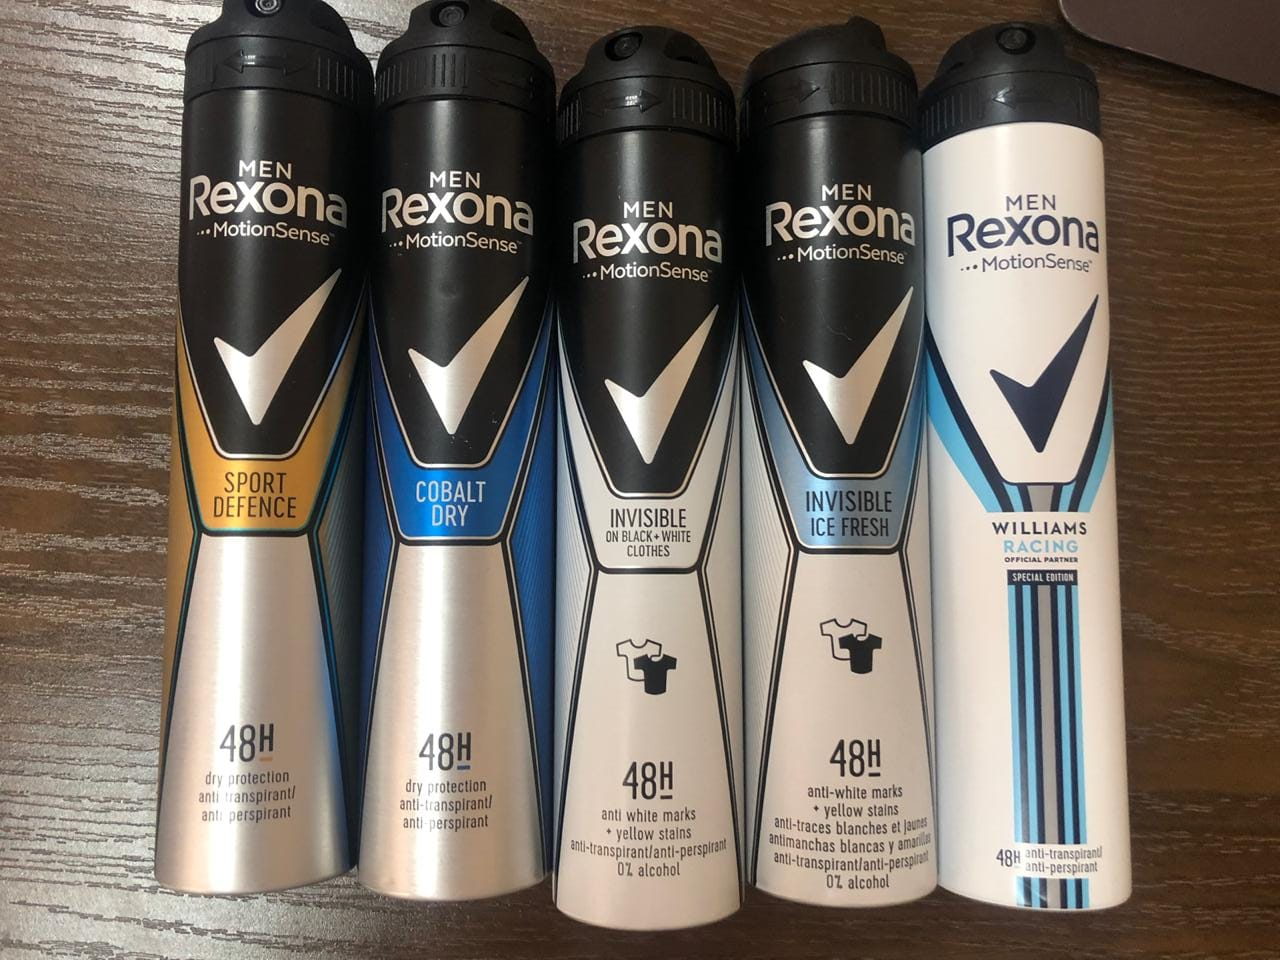 Rexona Motionsense Men